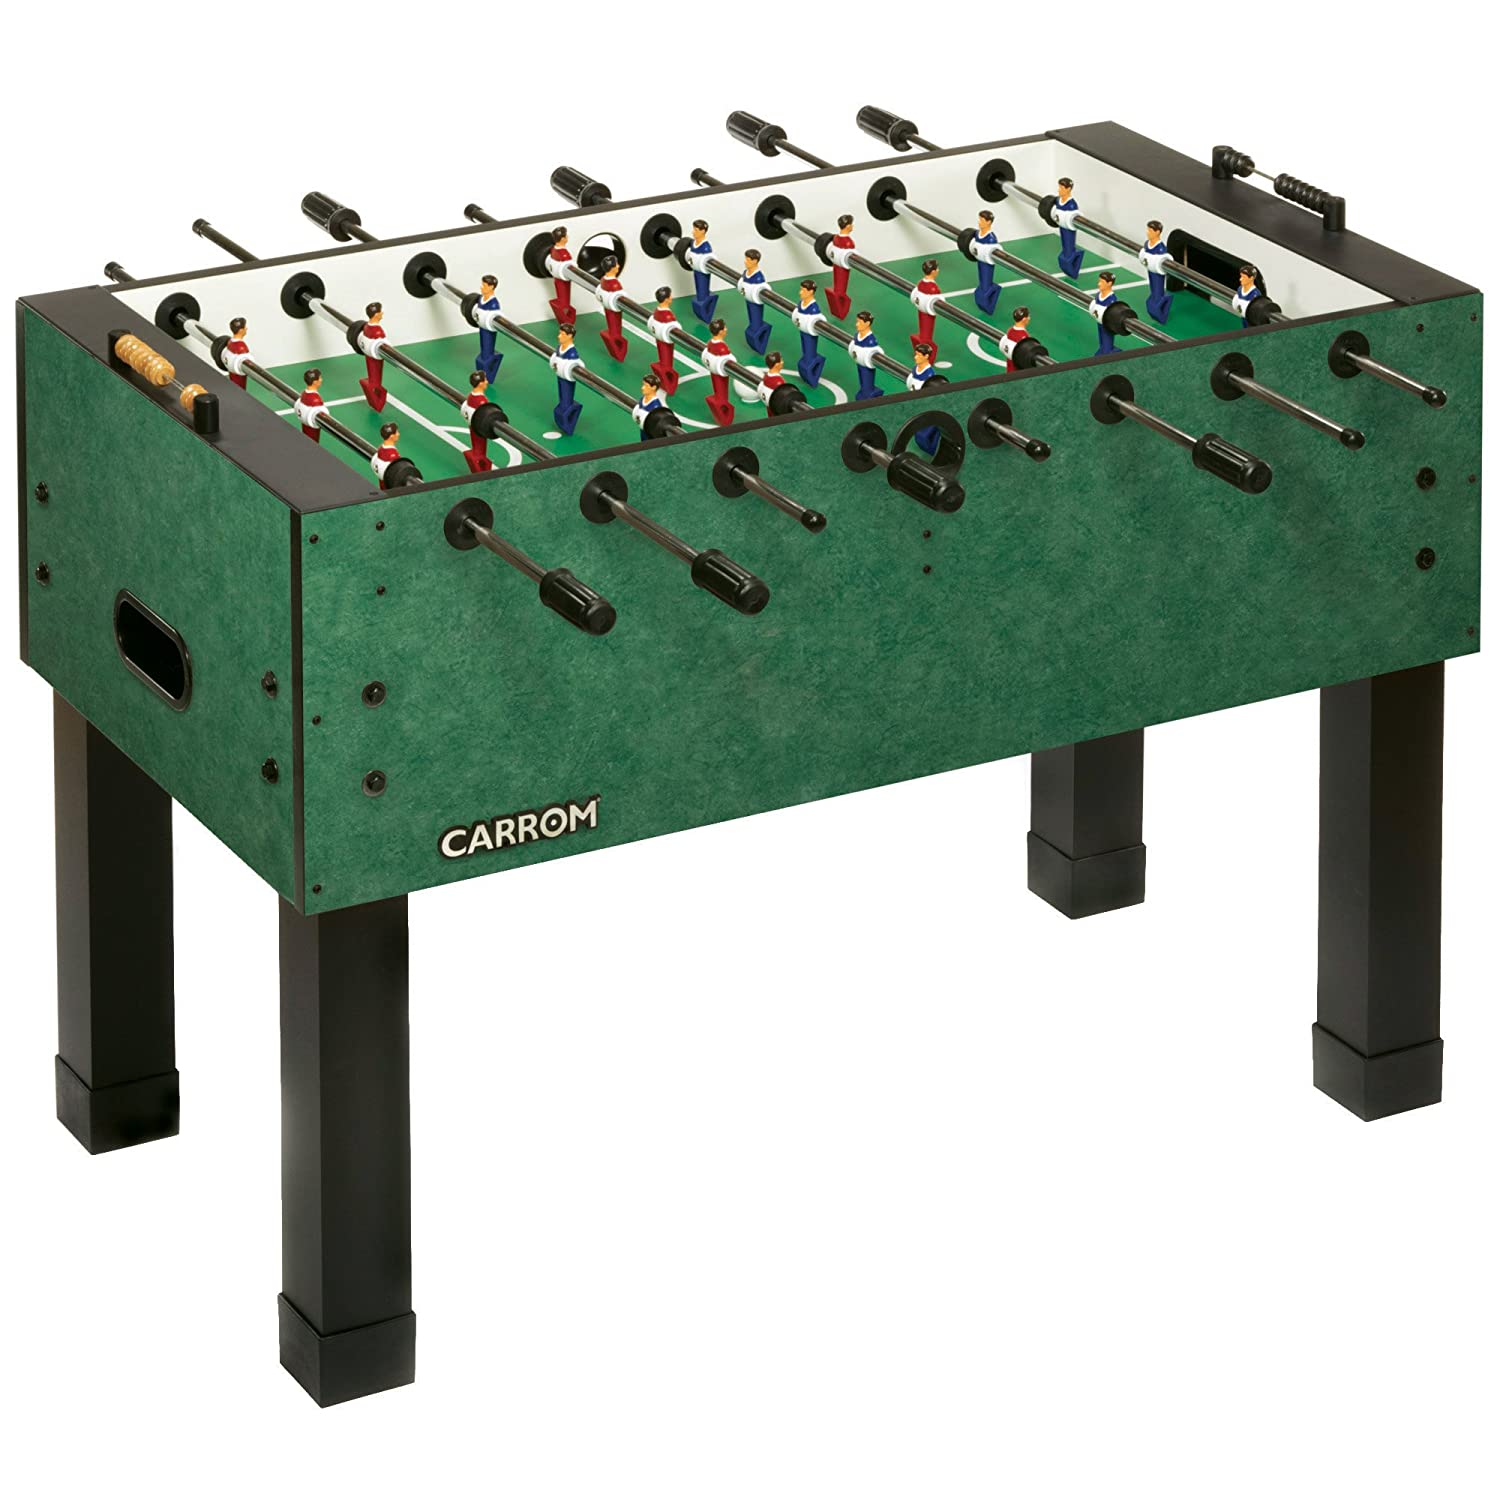 Carron soccer table reviews.